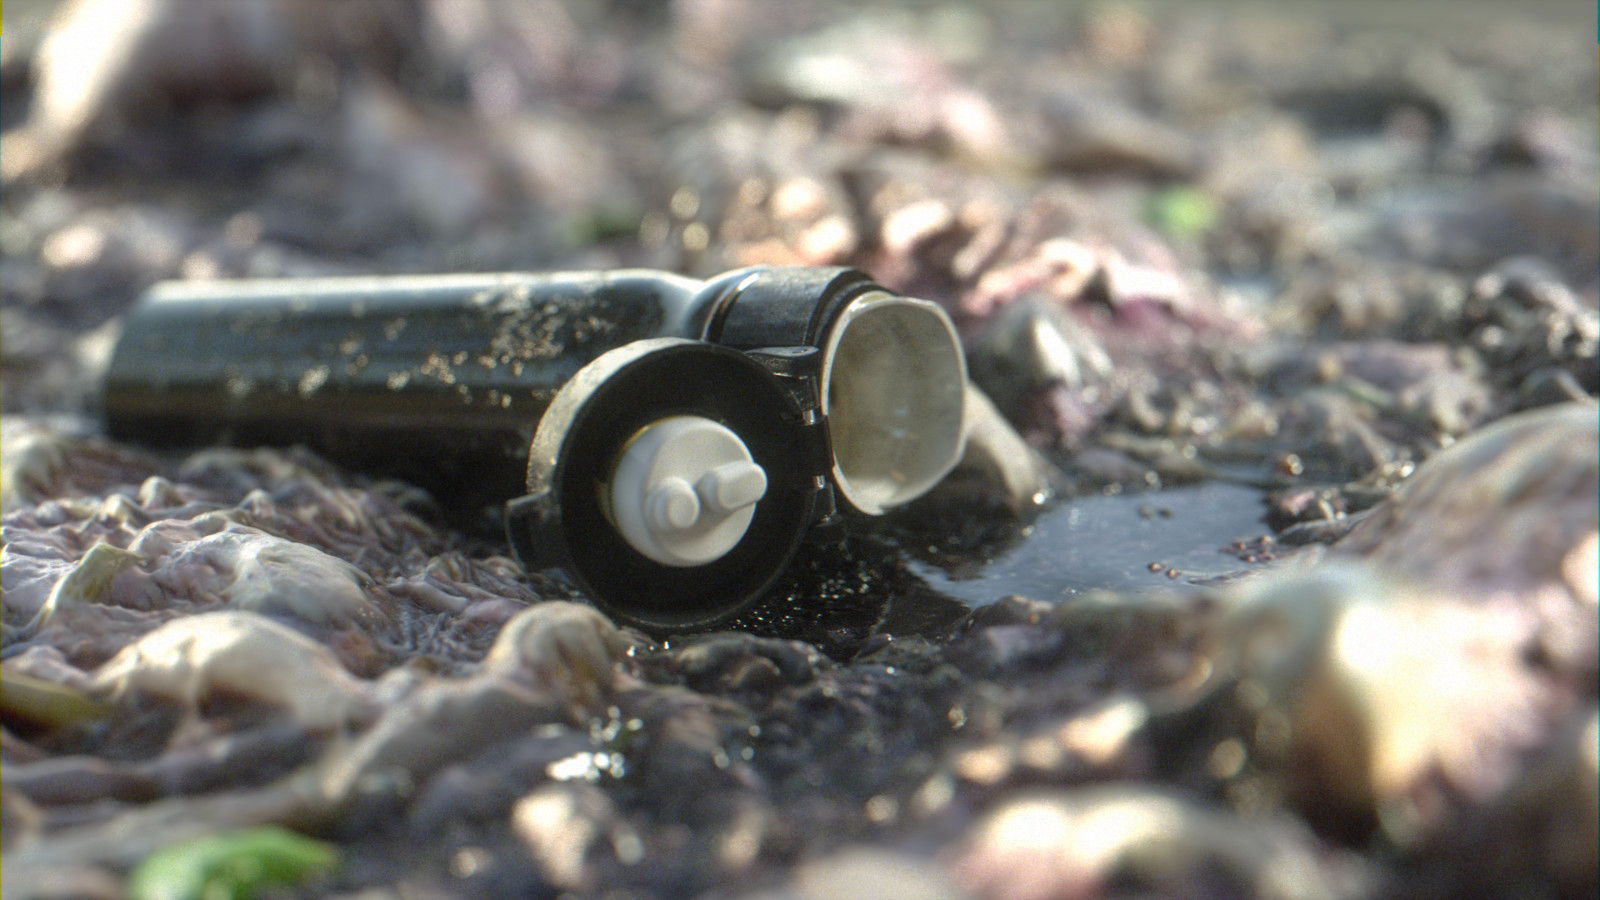 Flask on coastal ground